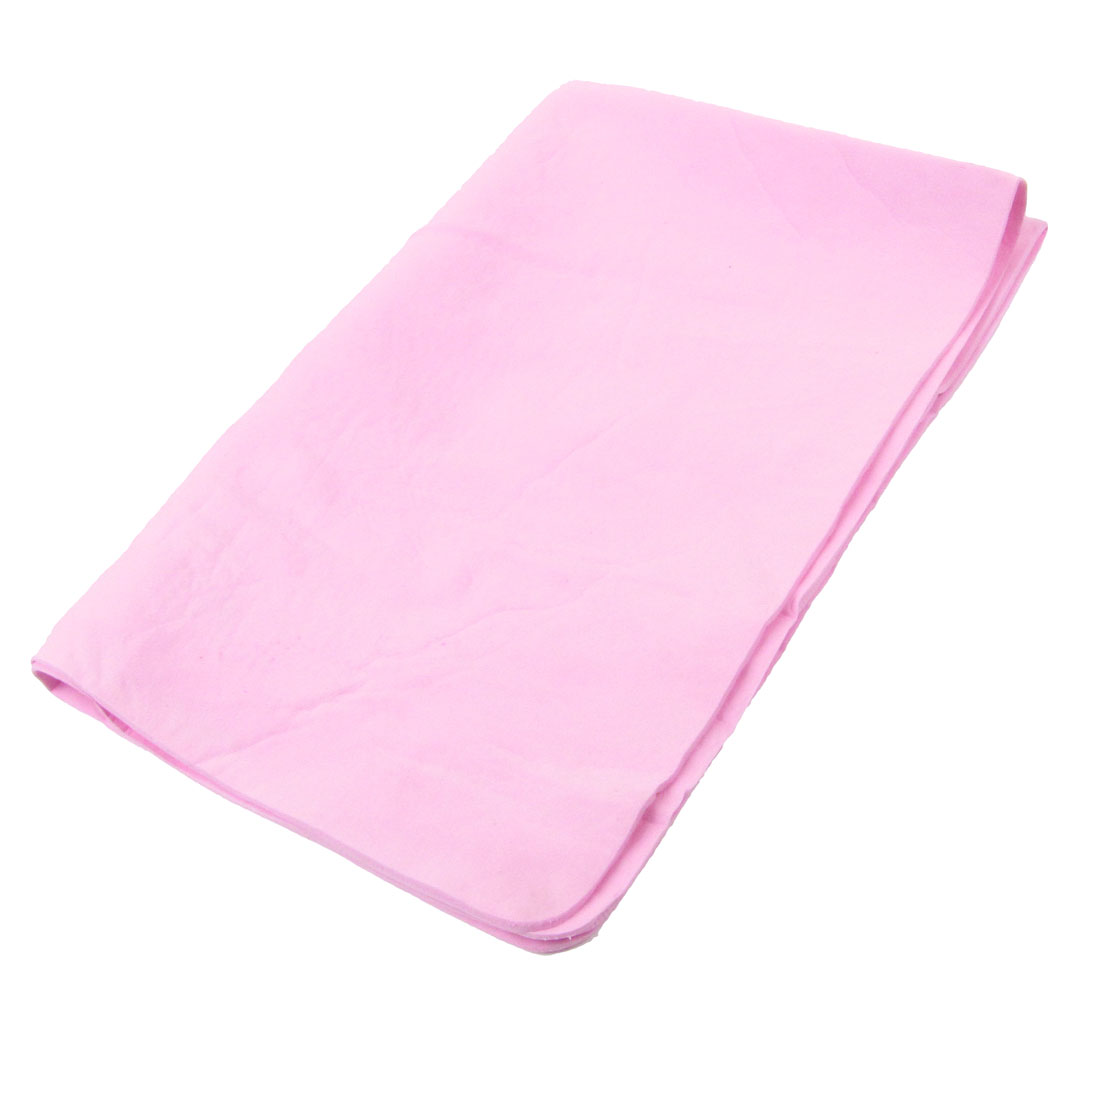 Home Furniture 64 x 43 x 0.2cm Synthetic Chamois Cleaning Cham Towel Pink w Case